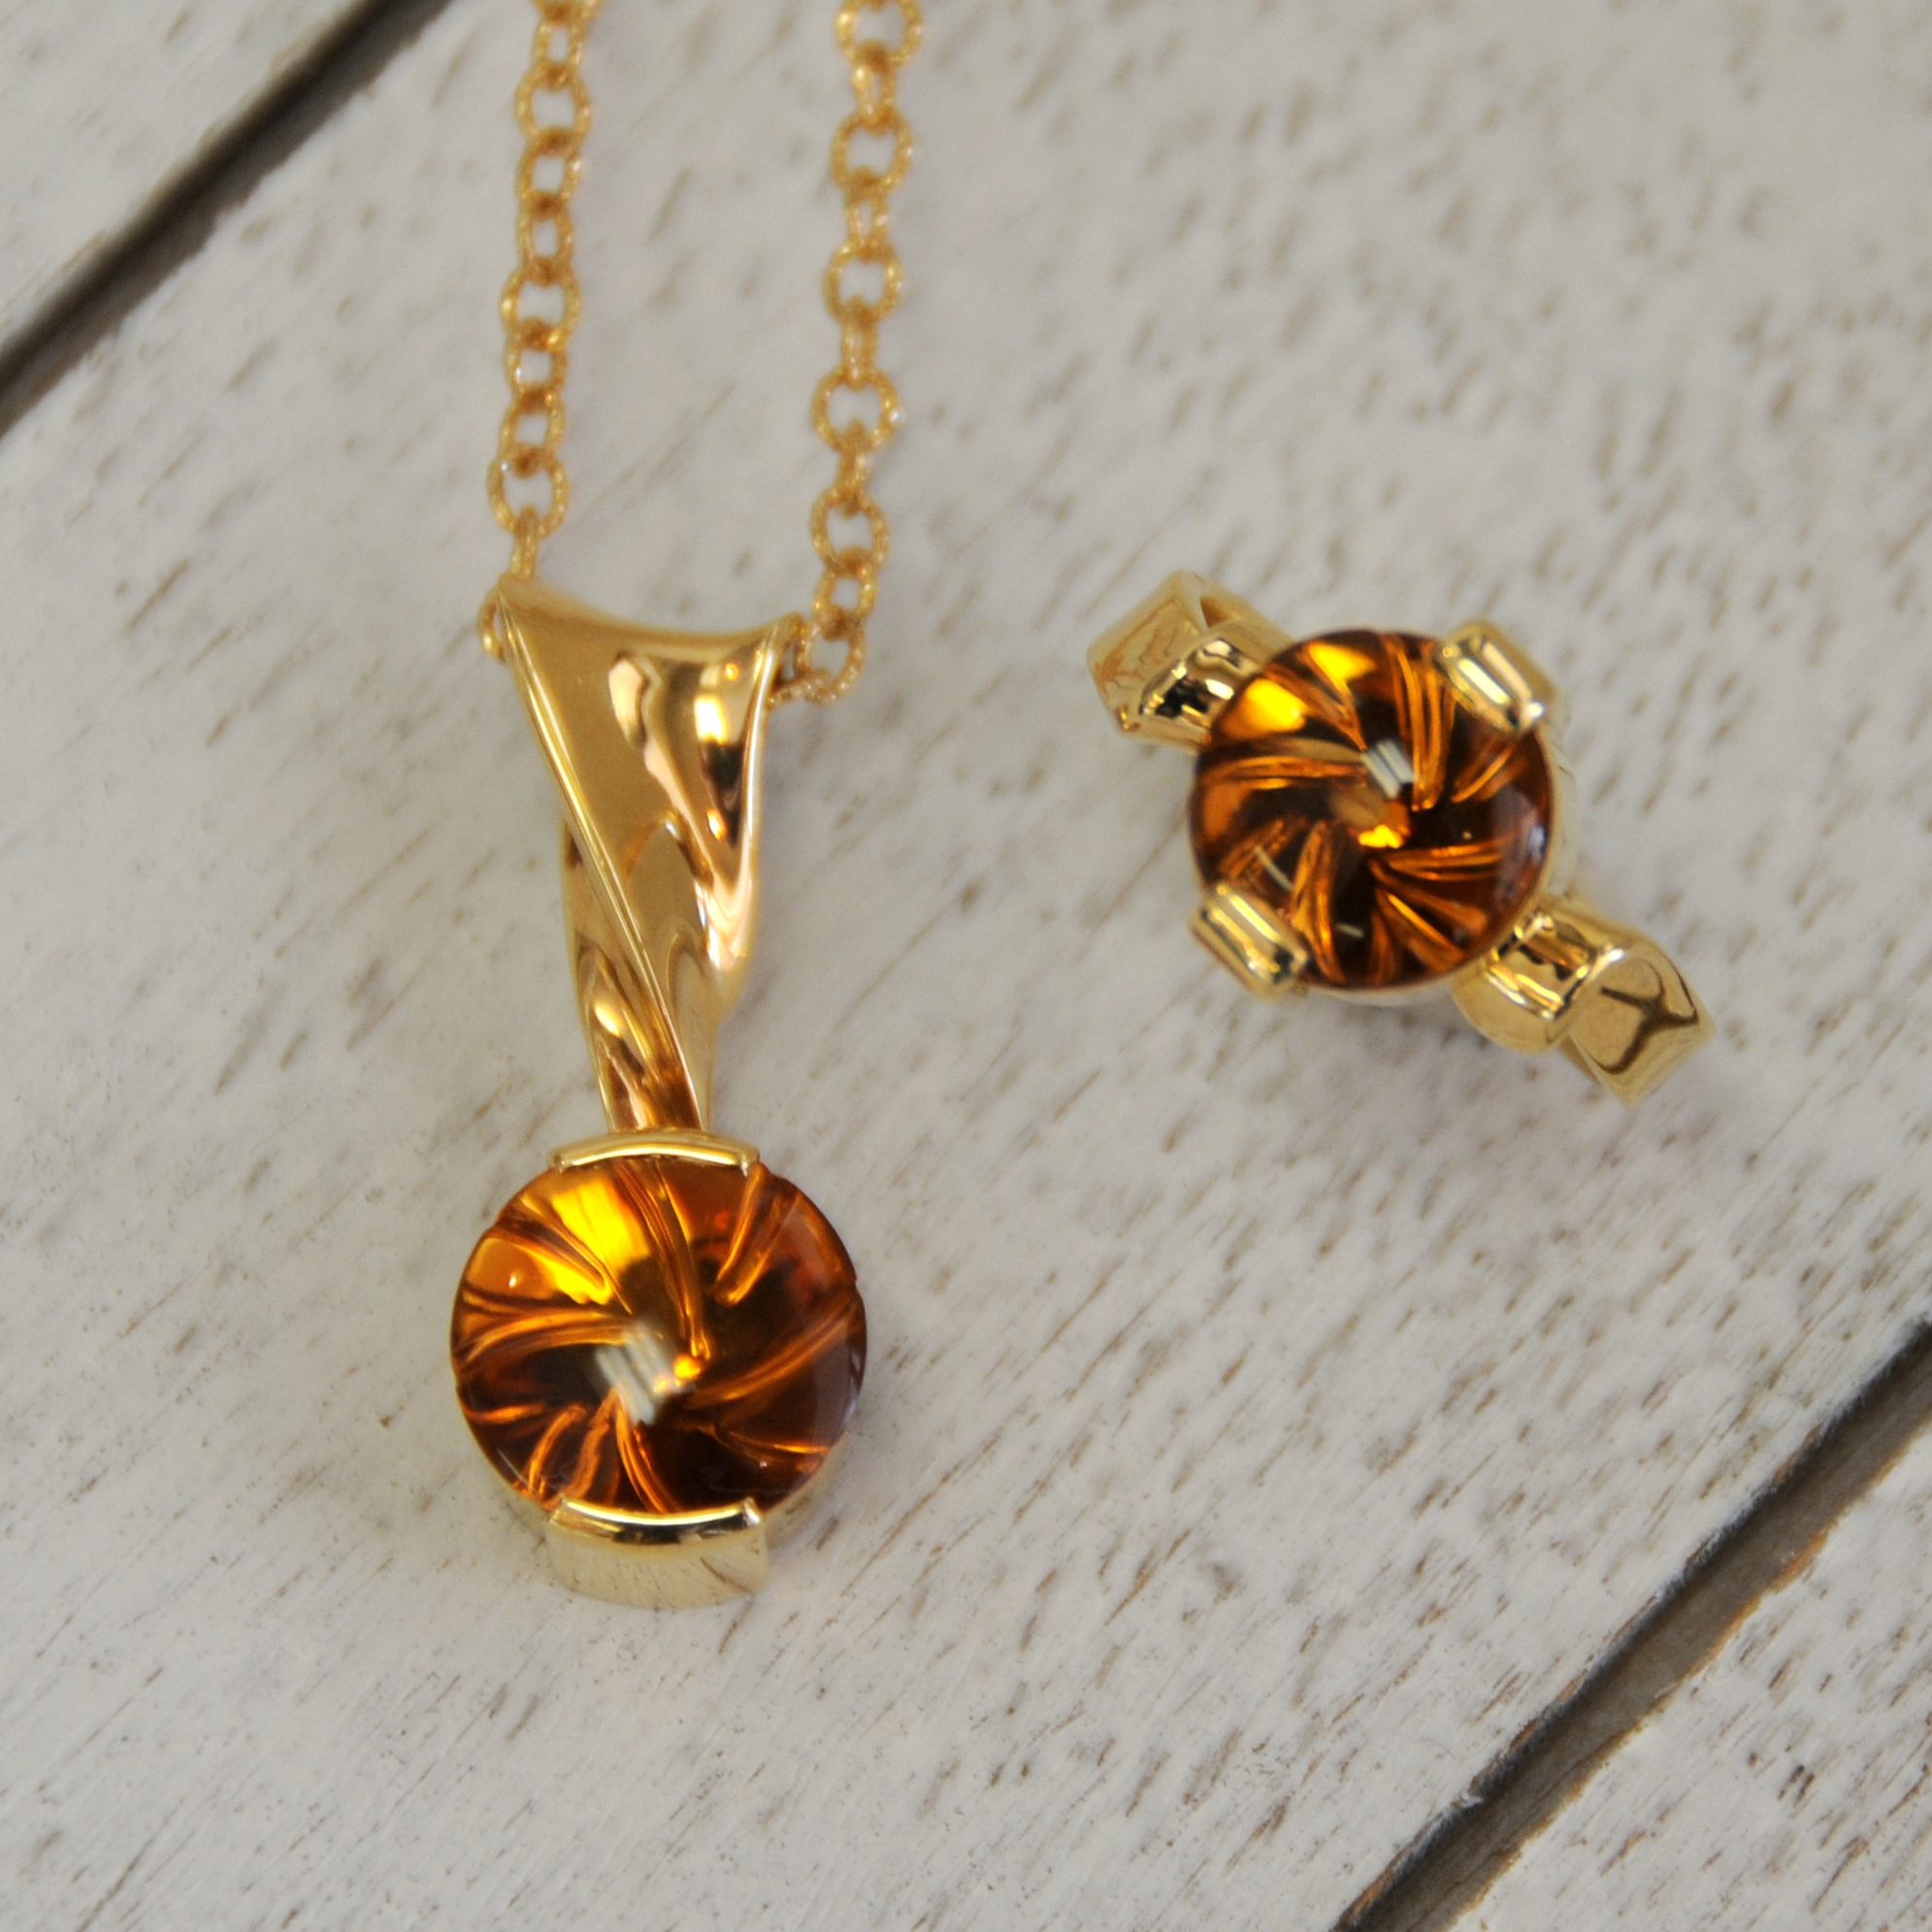 Spiral Cut TM Citrine by Larry Woods  Pendant and Ring Mountings Designed by Stacia Woods